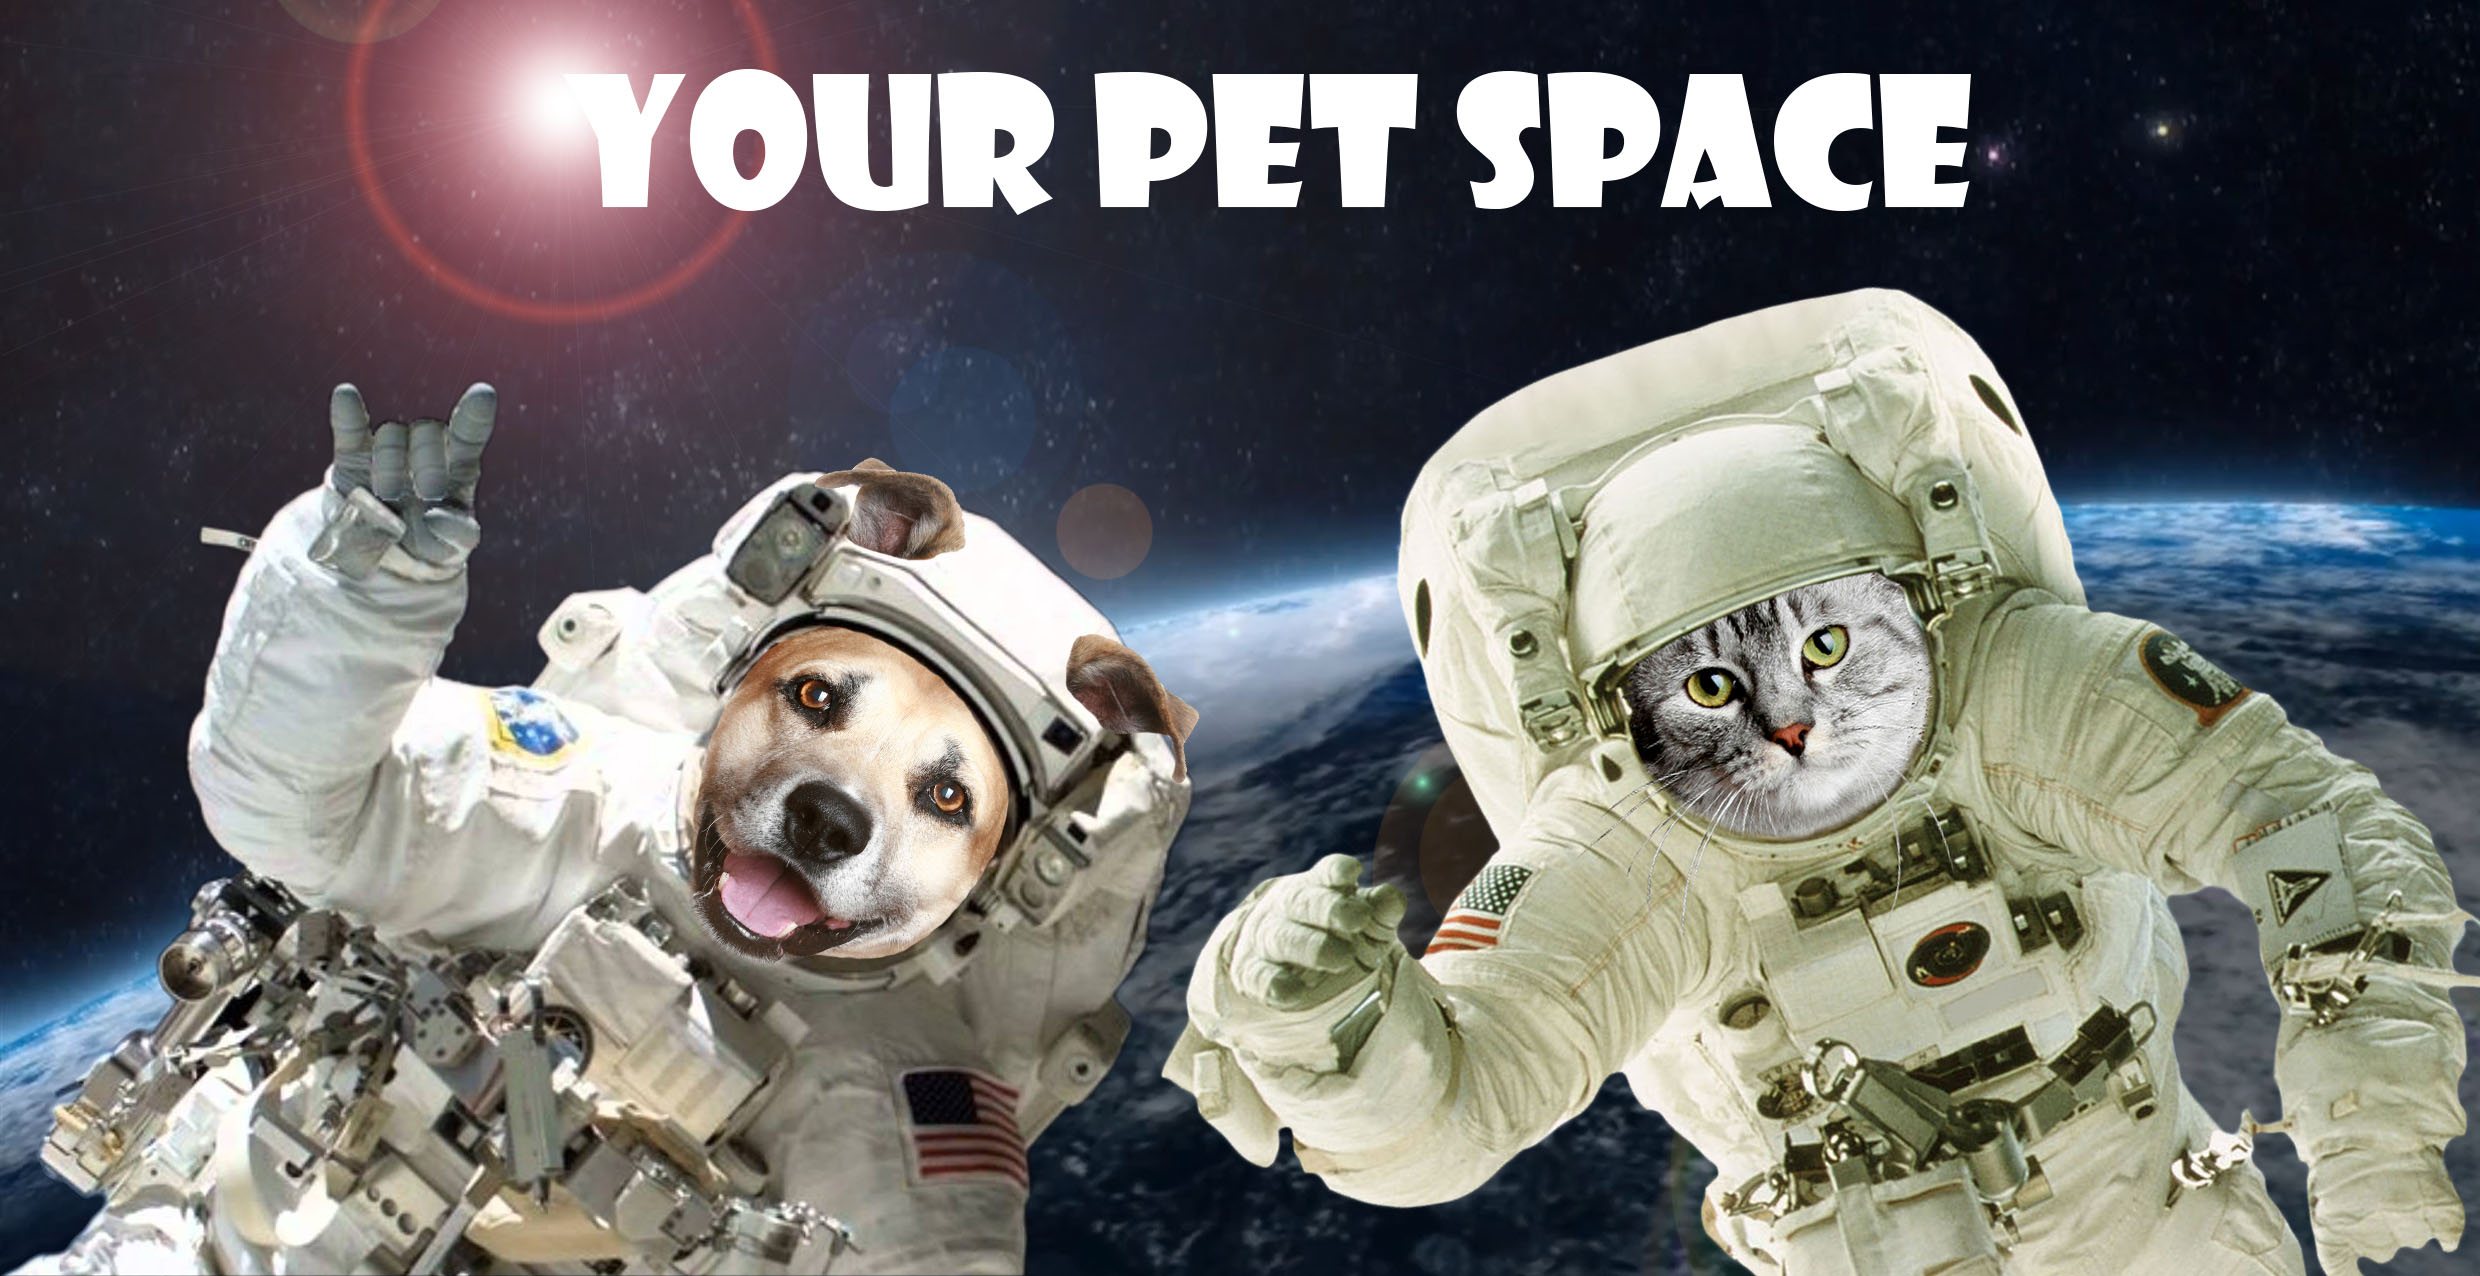 New Requirements For Your Pet Space